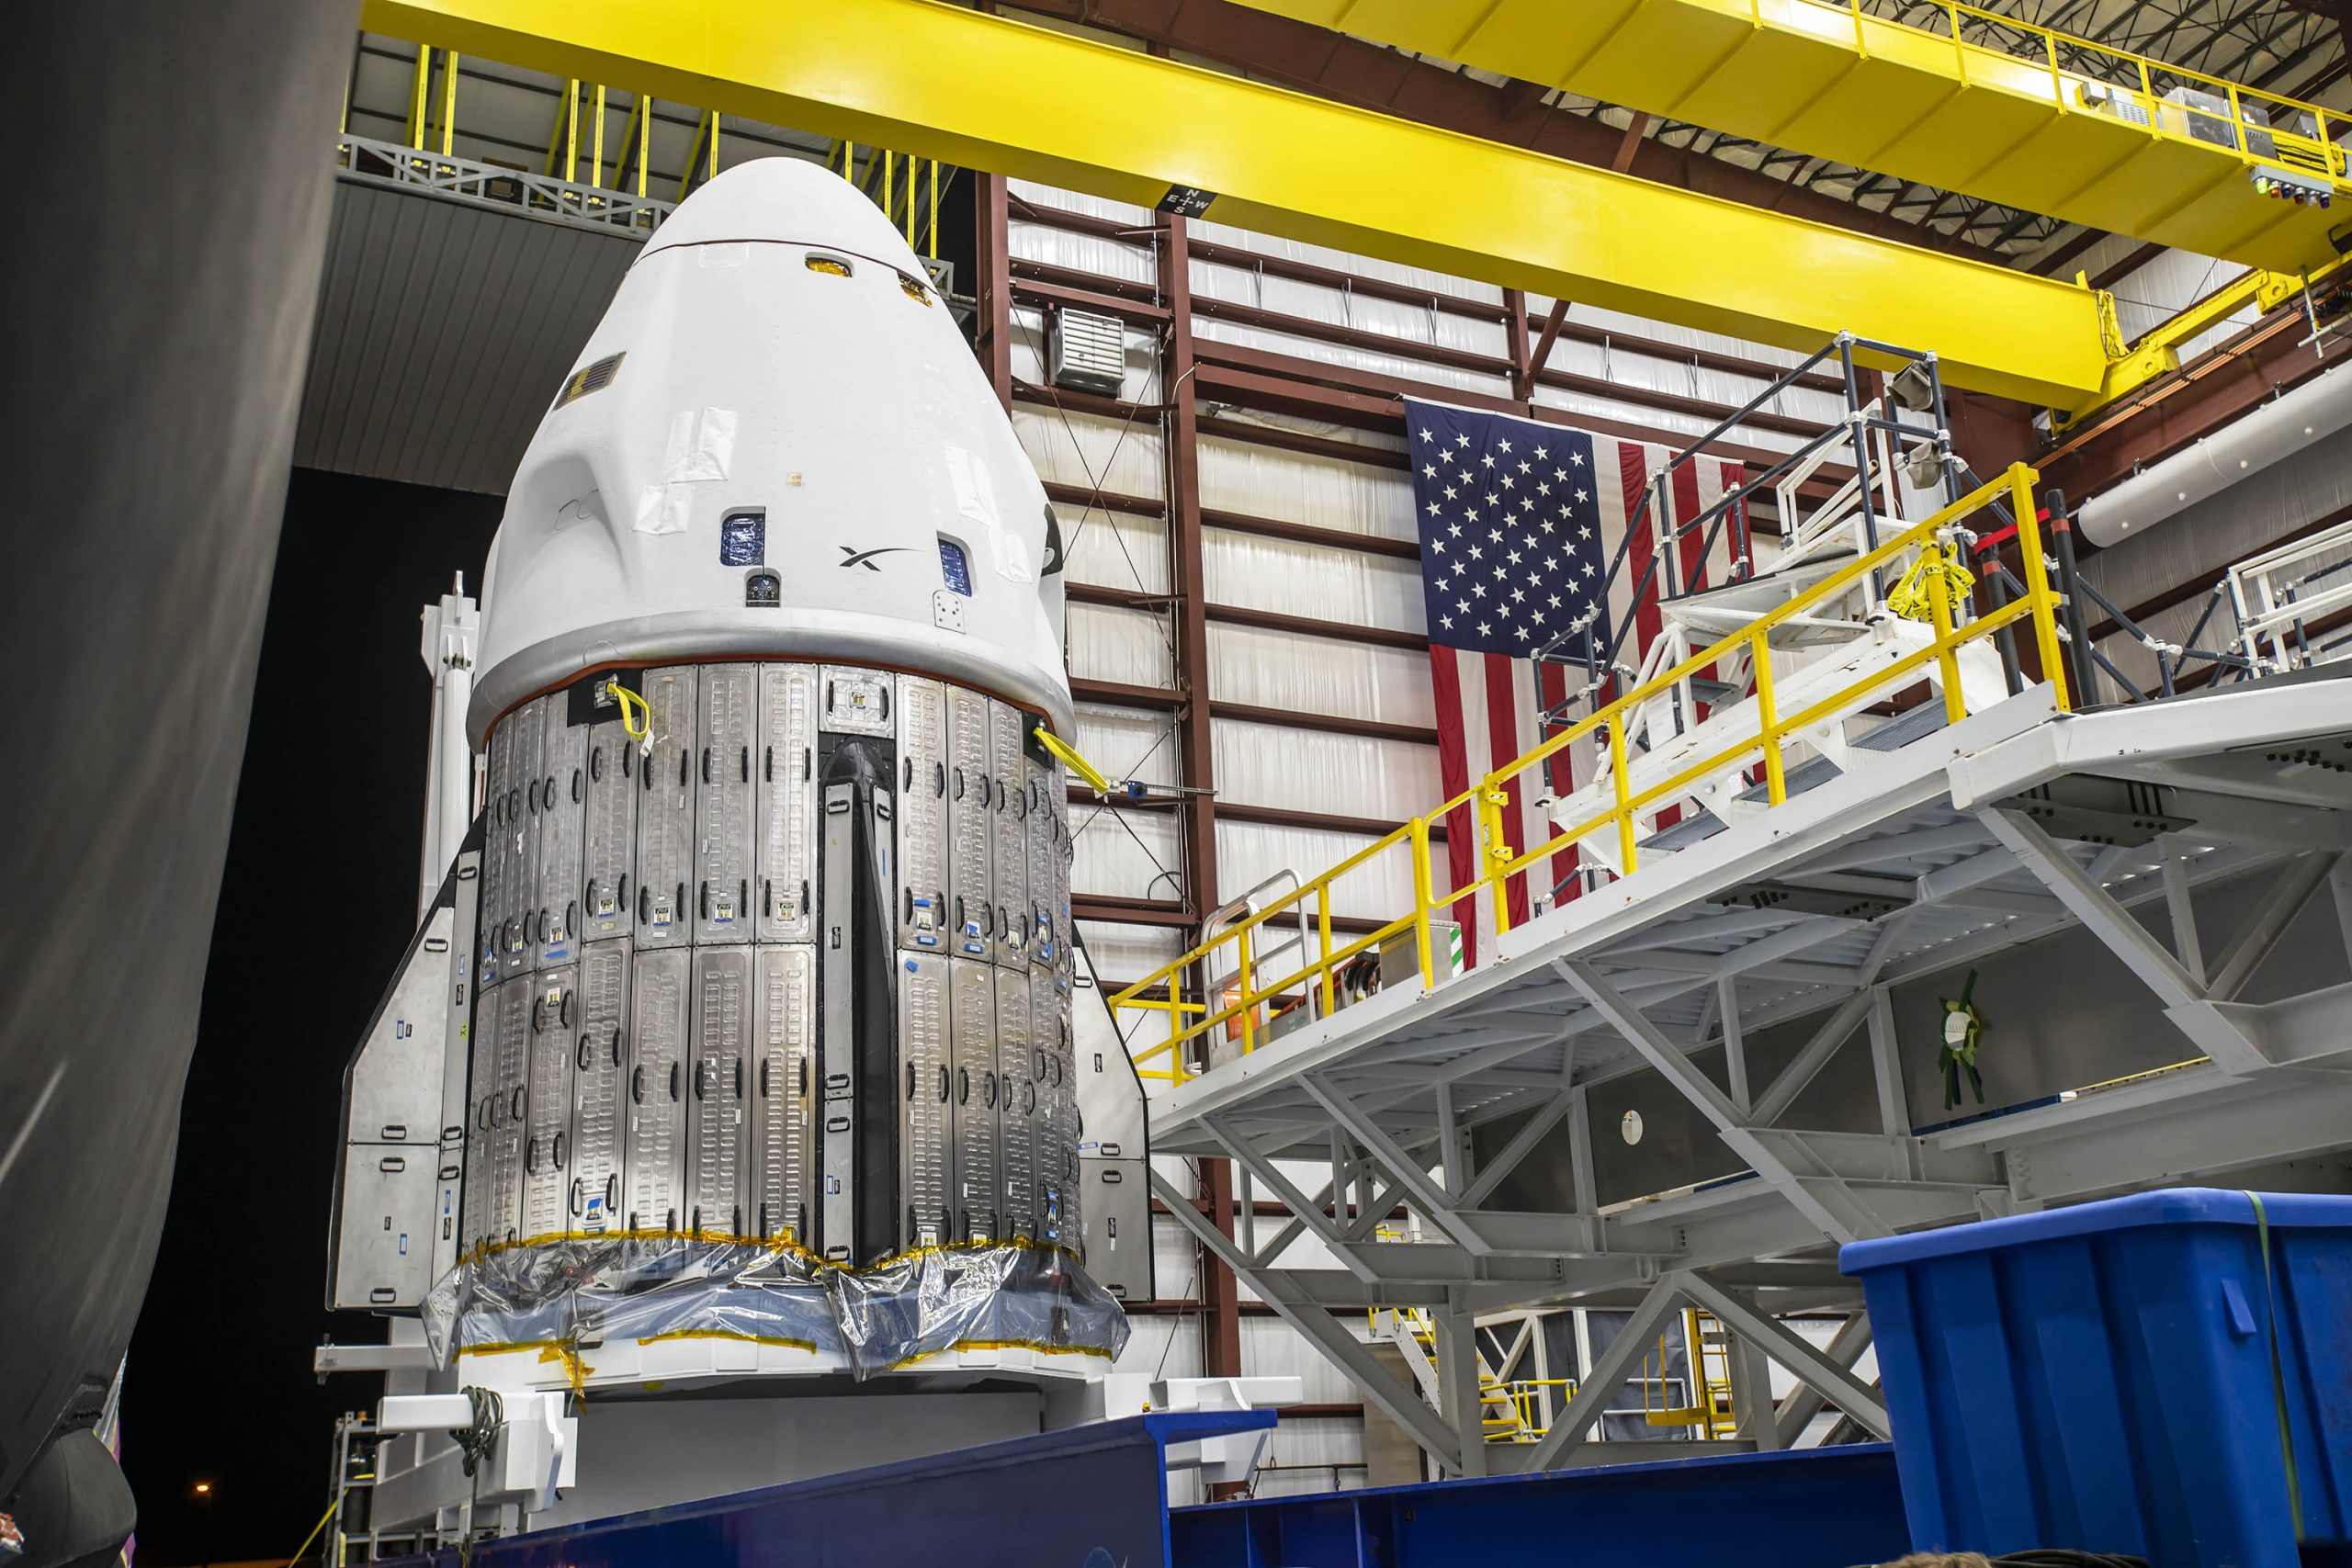 SpaceX's Crew Dragon spacecraft arrives at the hangar at Launch Complex 39A on Oct. 24, 2021.